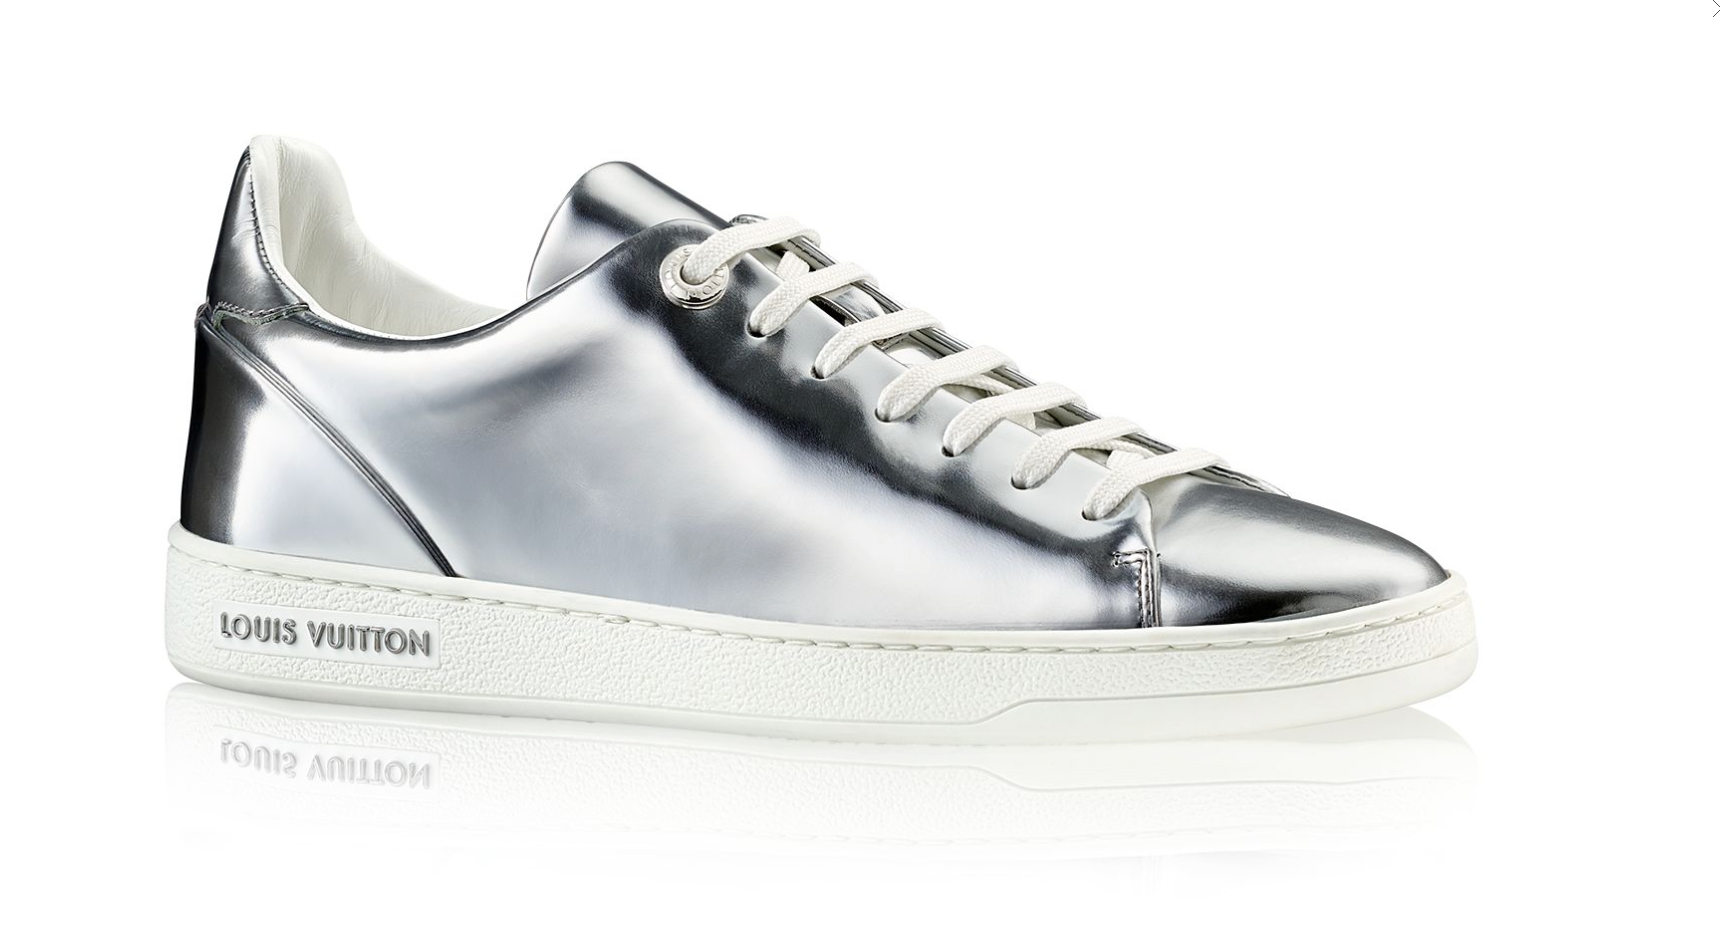 1b8bd6411dda Louis Vuitton Silver FRONTROW SNEAKER Reinterpreting the classic tennis shoe,  this on-trend sneaker in metallic calf leather has a clean-cut design ...